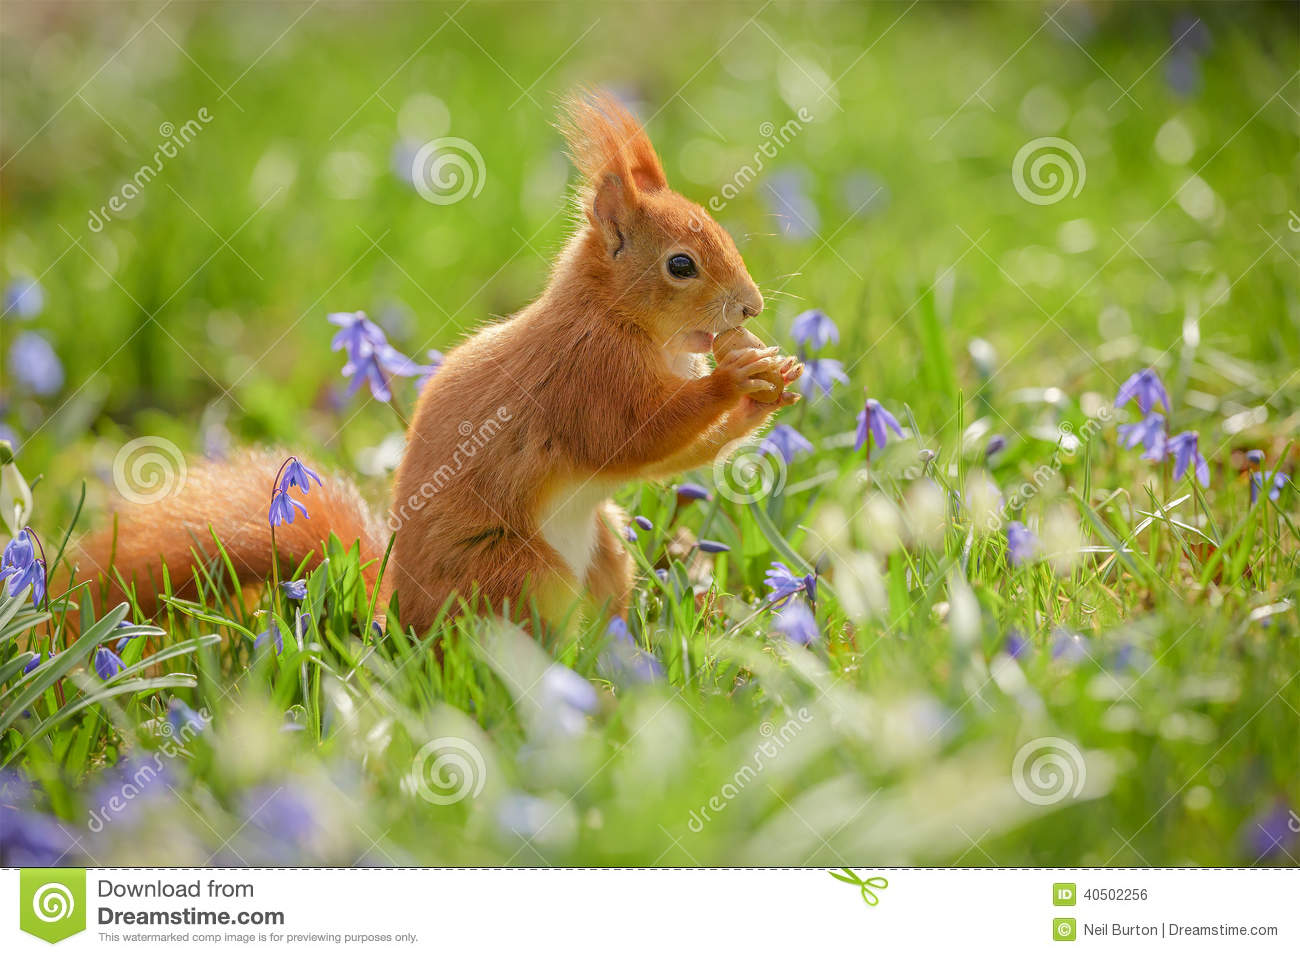 Red Squirrel Sitting Spring Flowers Stock Photo - Image: 40502256